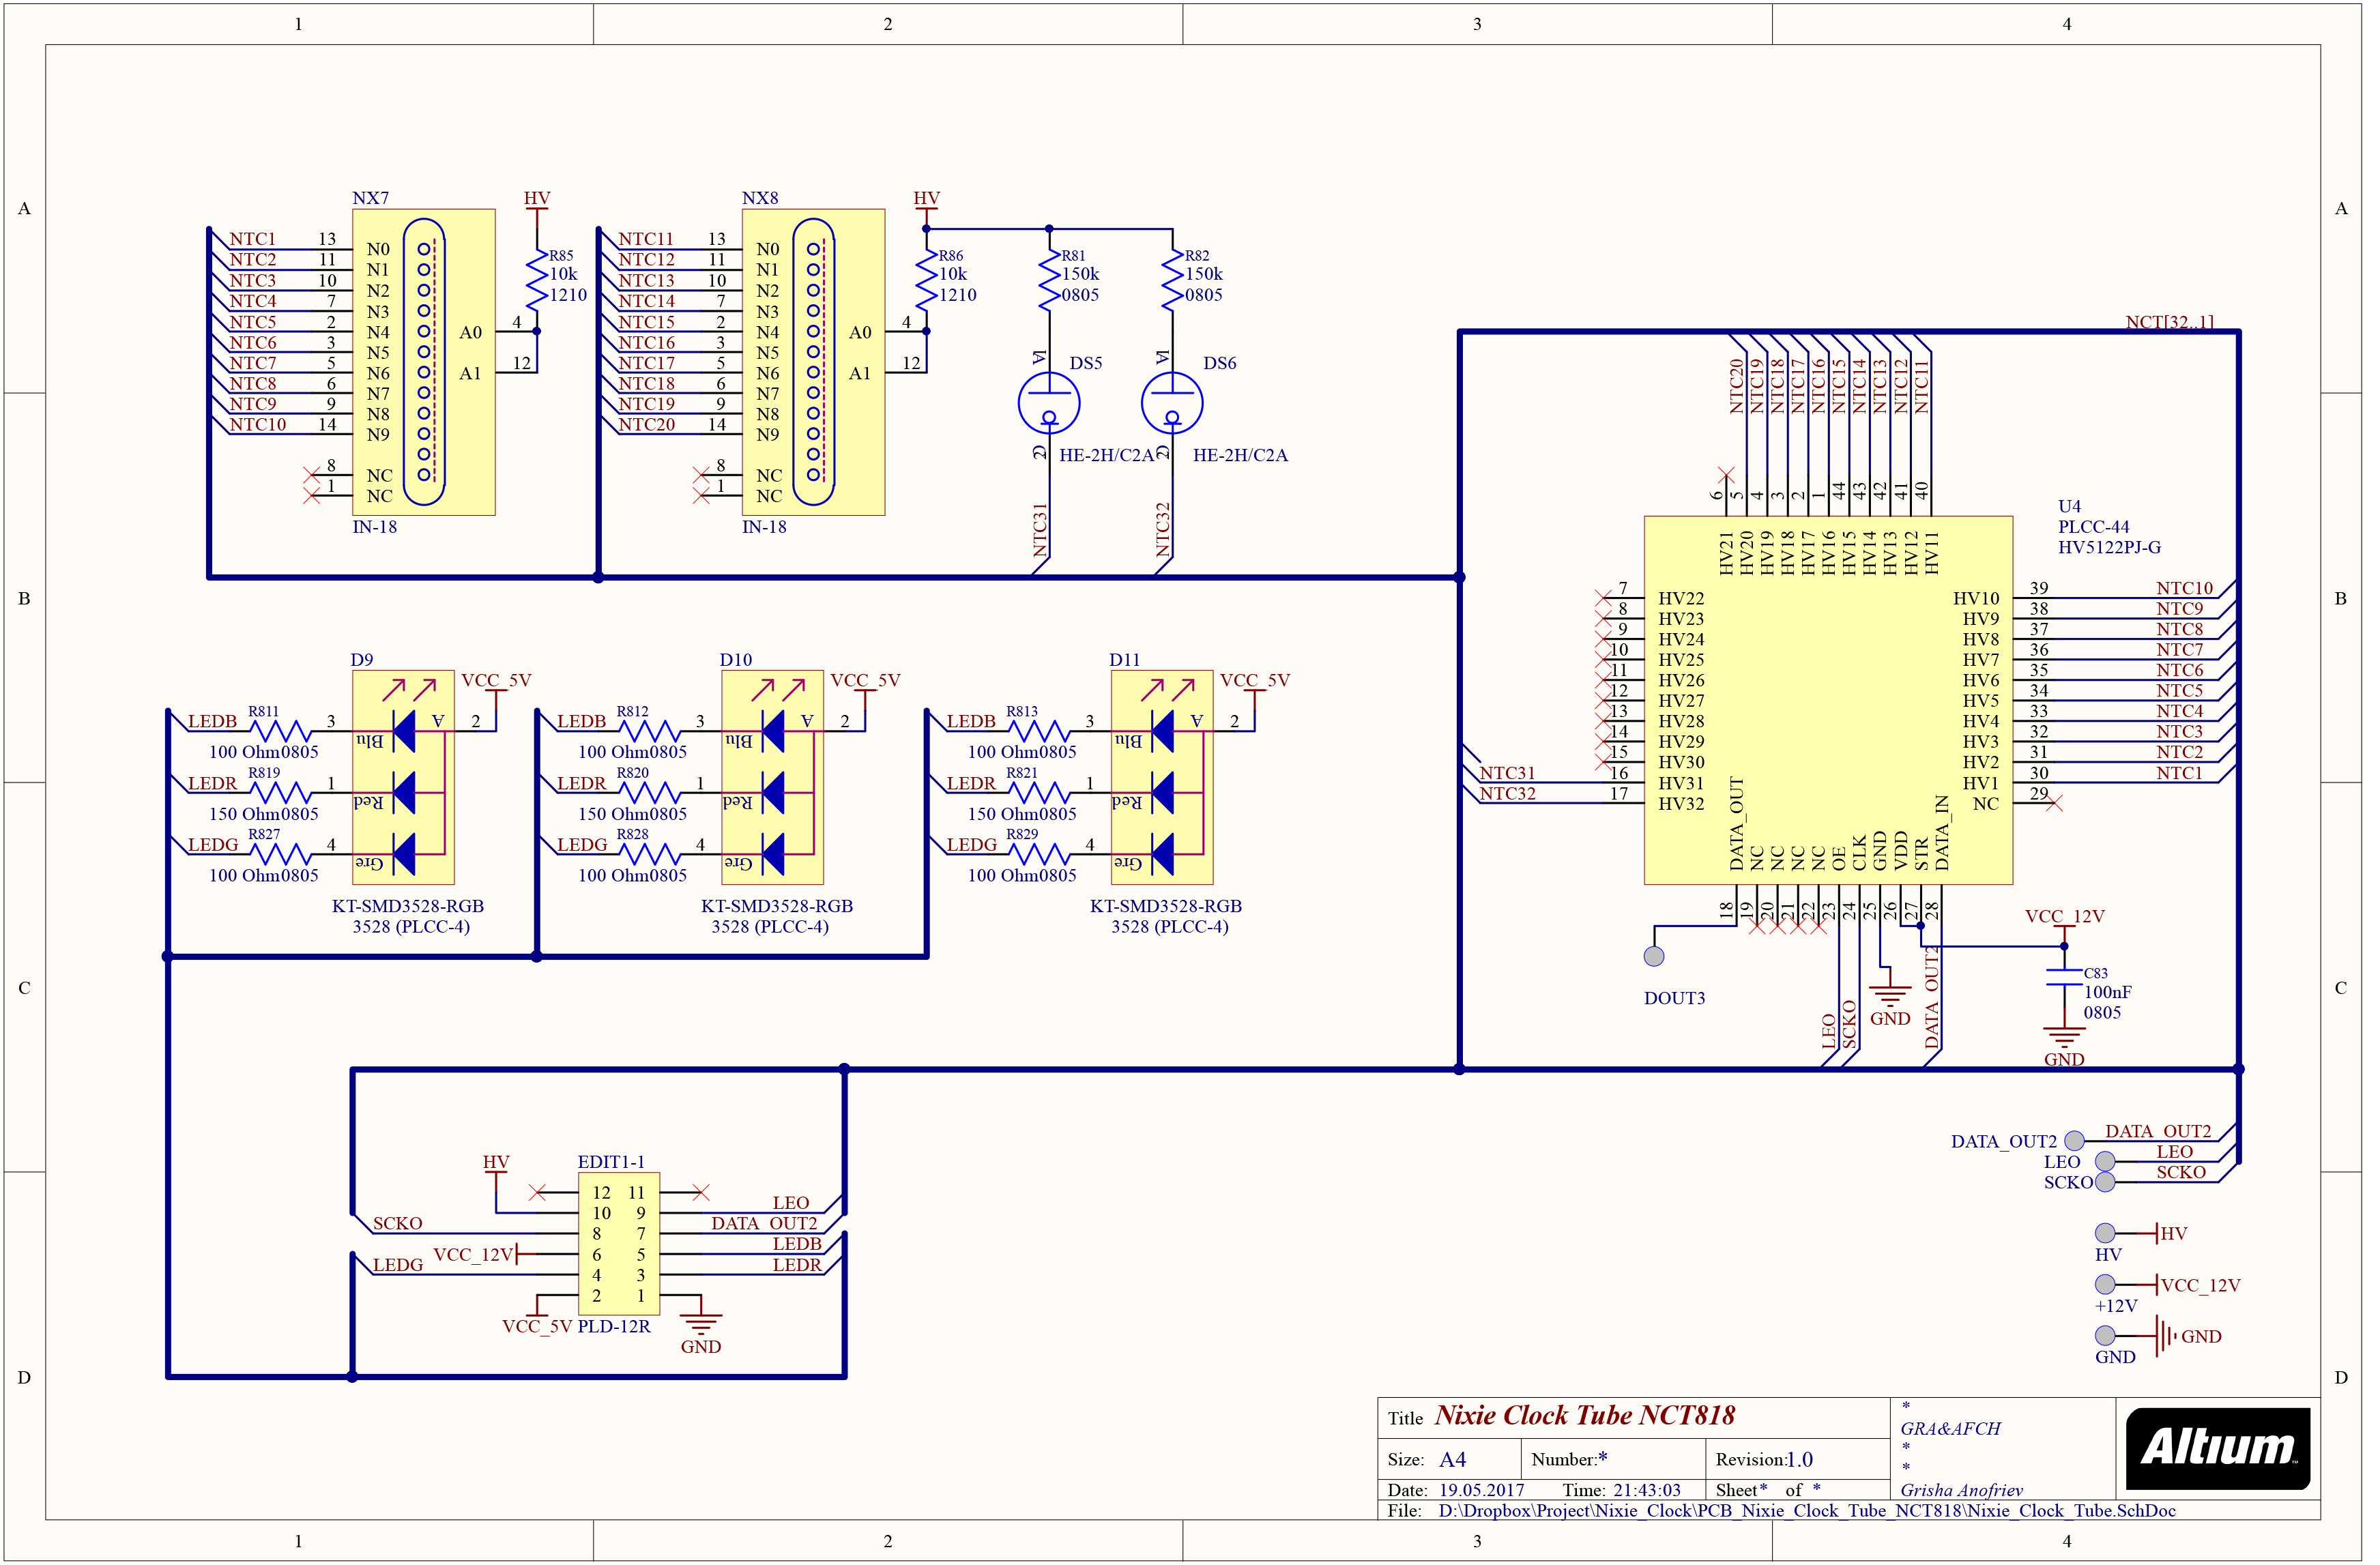 Schematic Nixie Clock Tube NCT818 V1.0 – GRA & AFCH on